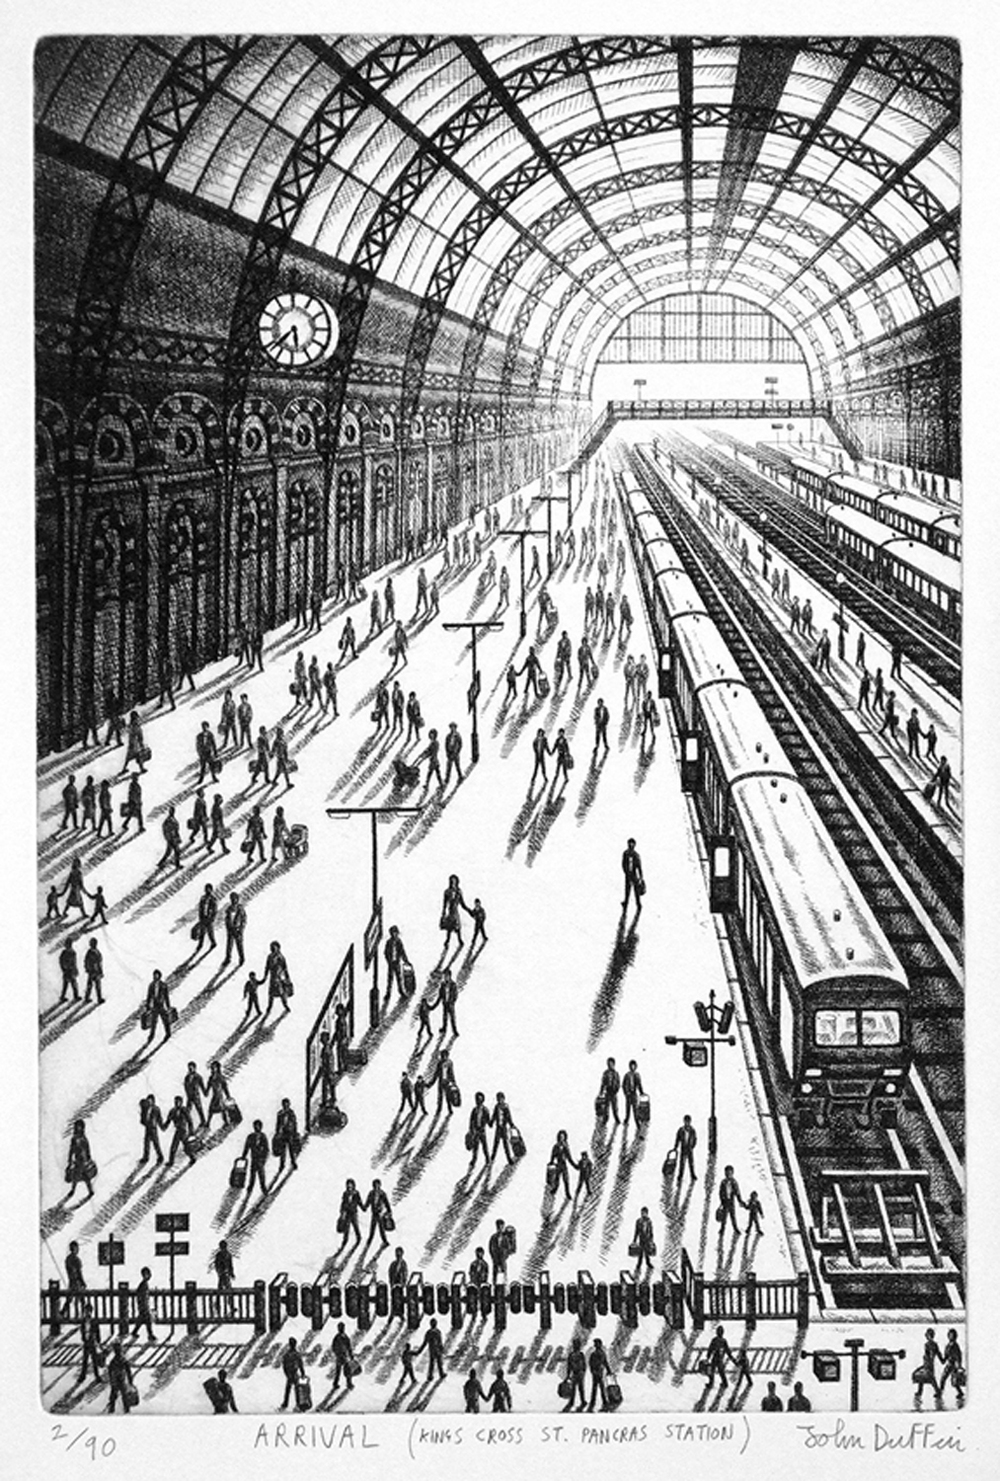 John Duffin   Arrival (King's Cross St Pancras)   etching